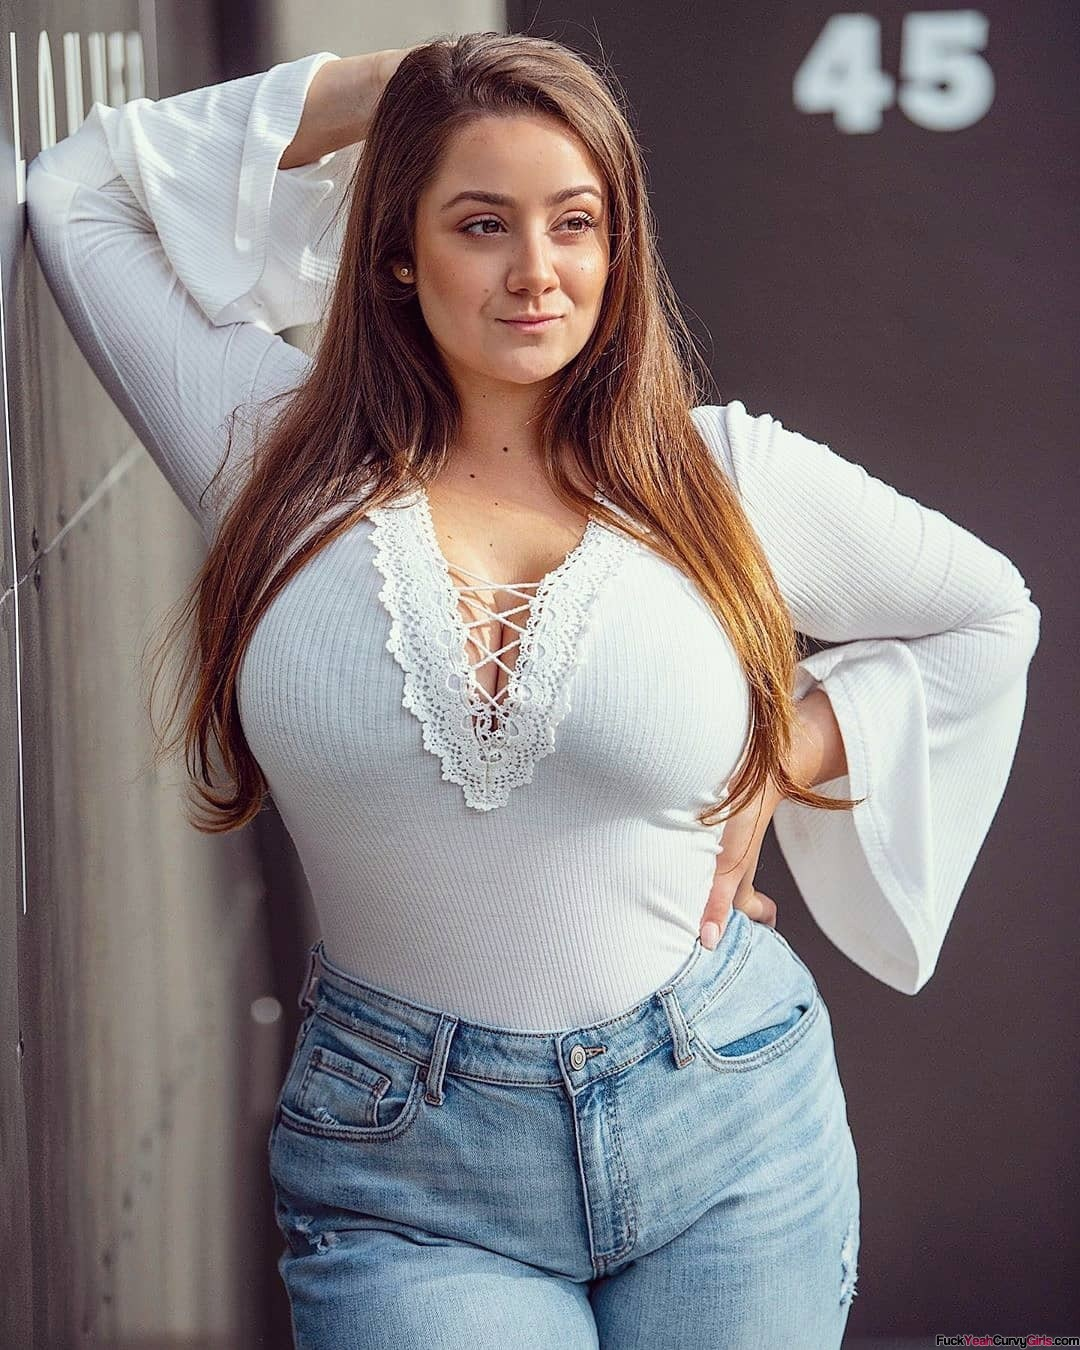 plus-size-babe-in-jeans